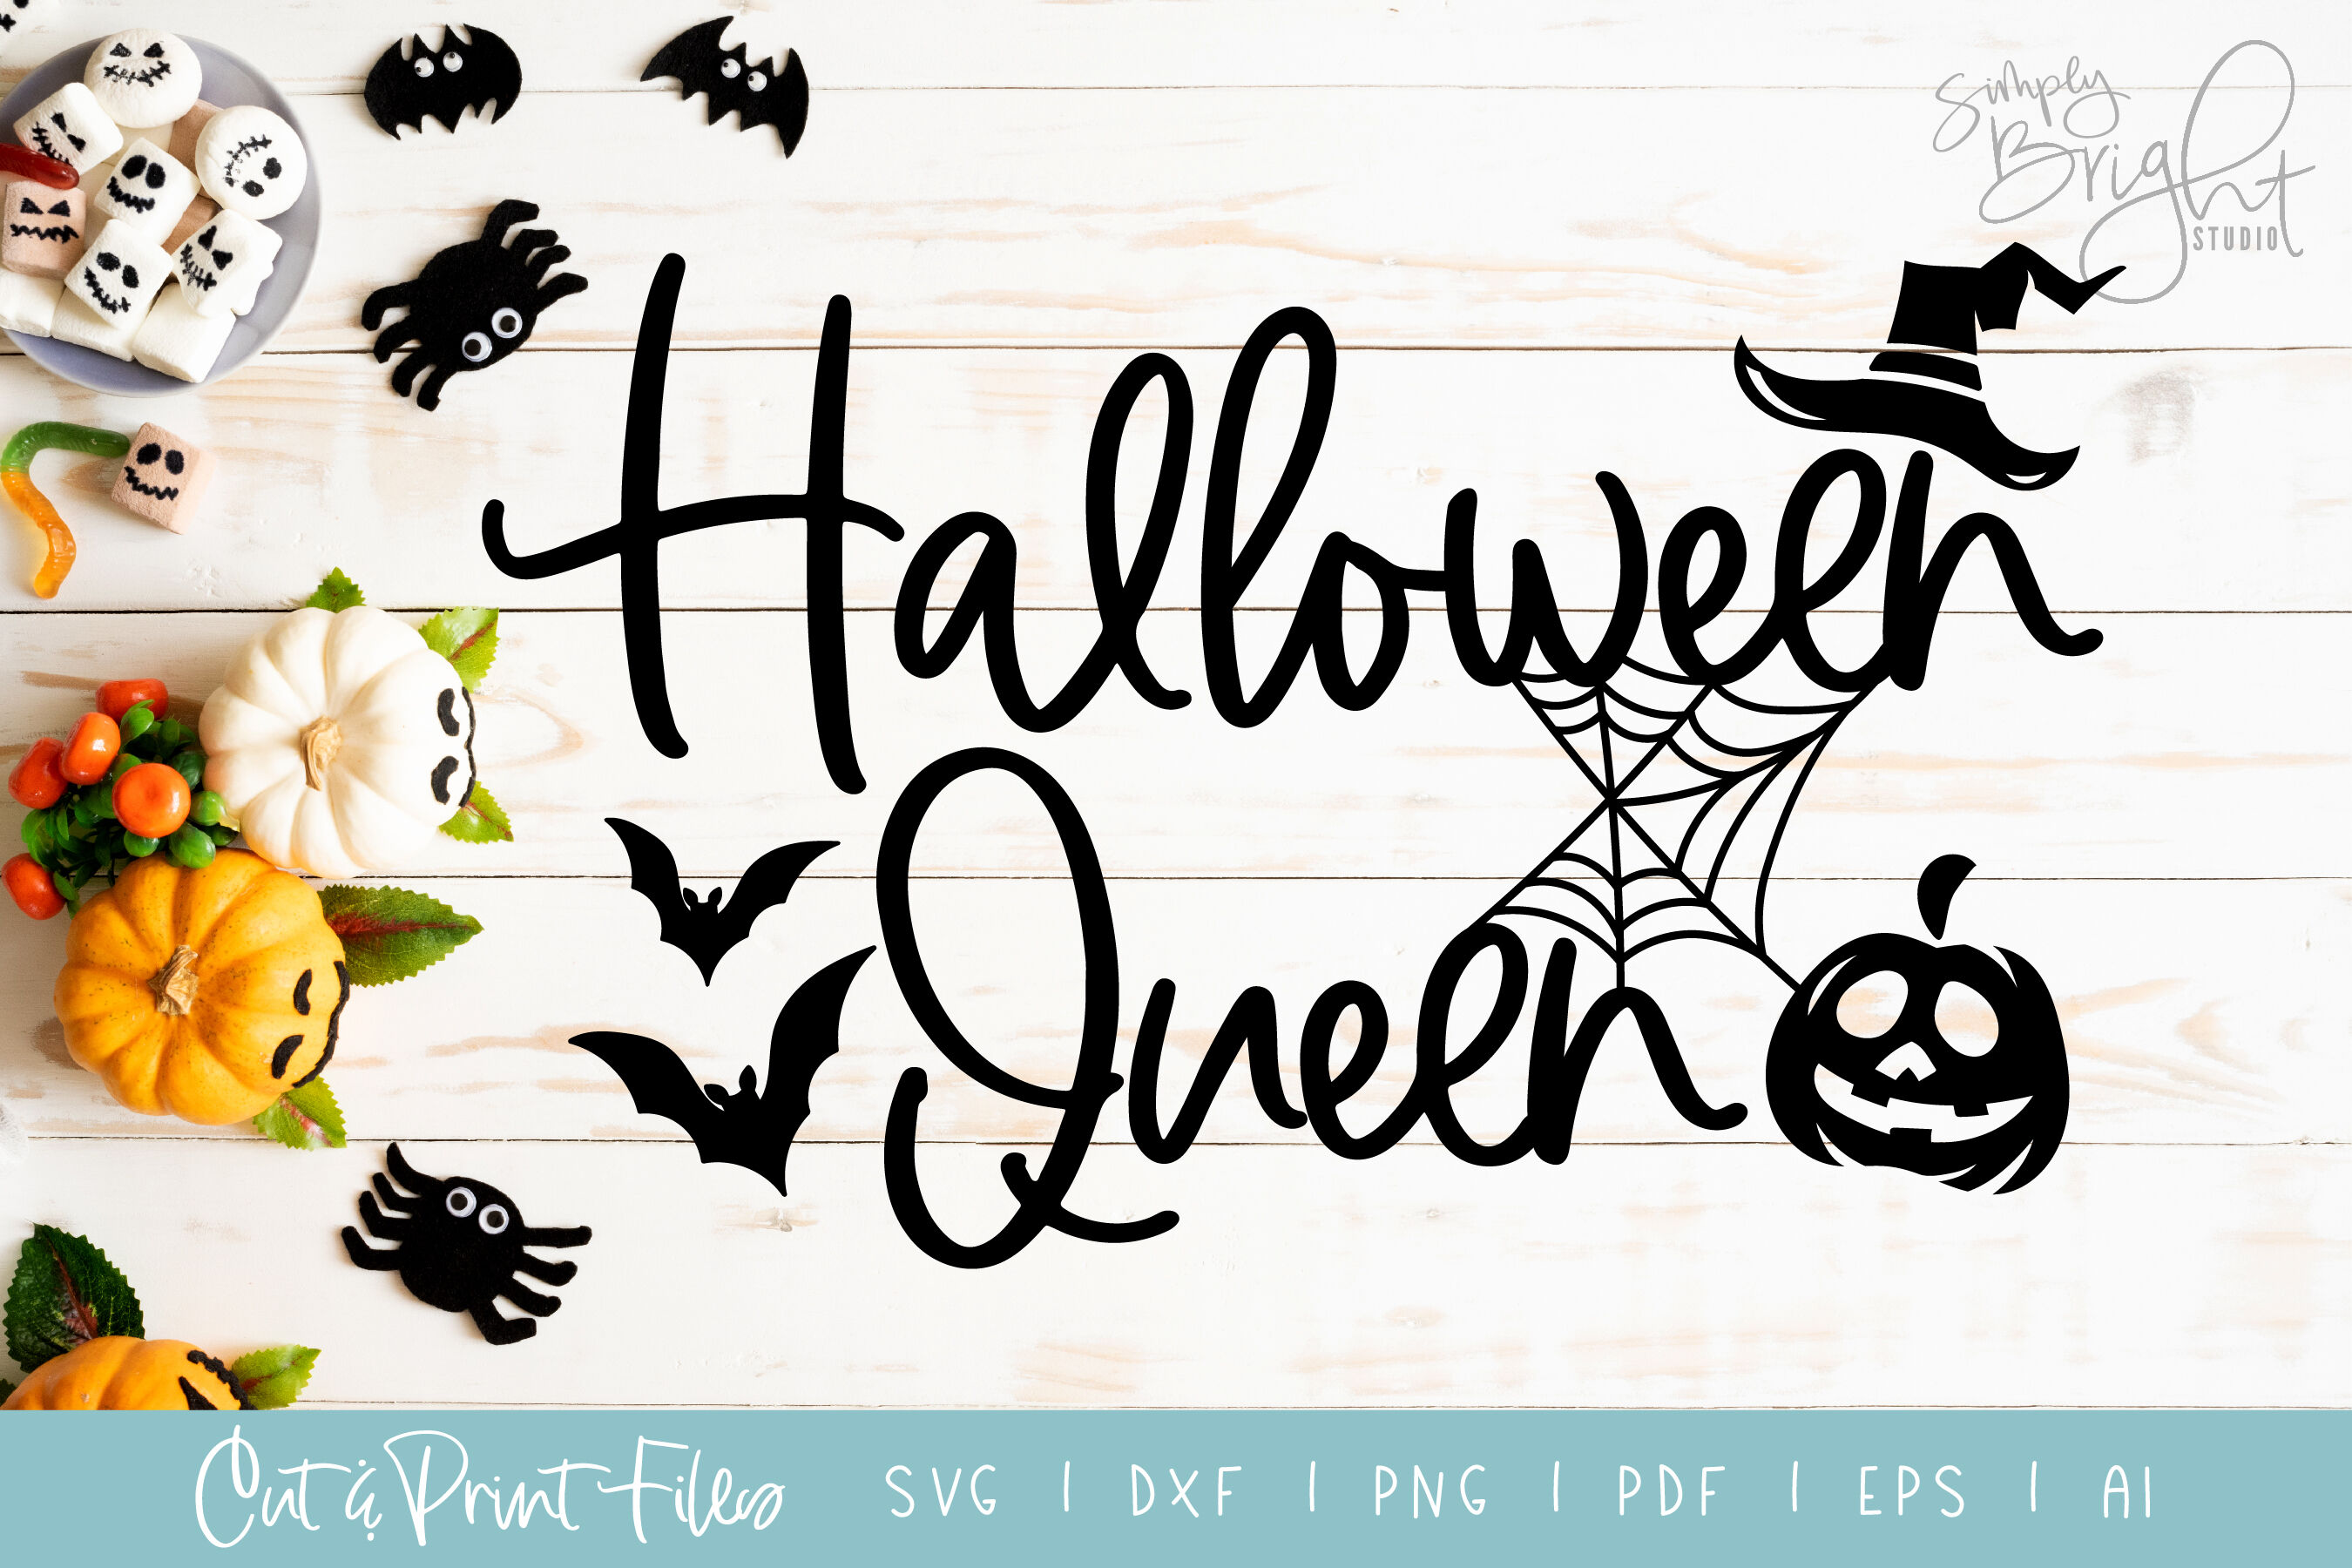 View Happy Halloween – Dxf/Svg/Png/Pdf Cut & Print Files Crafter Files